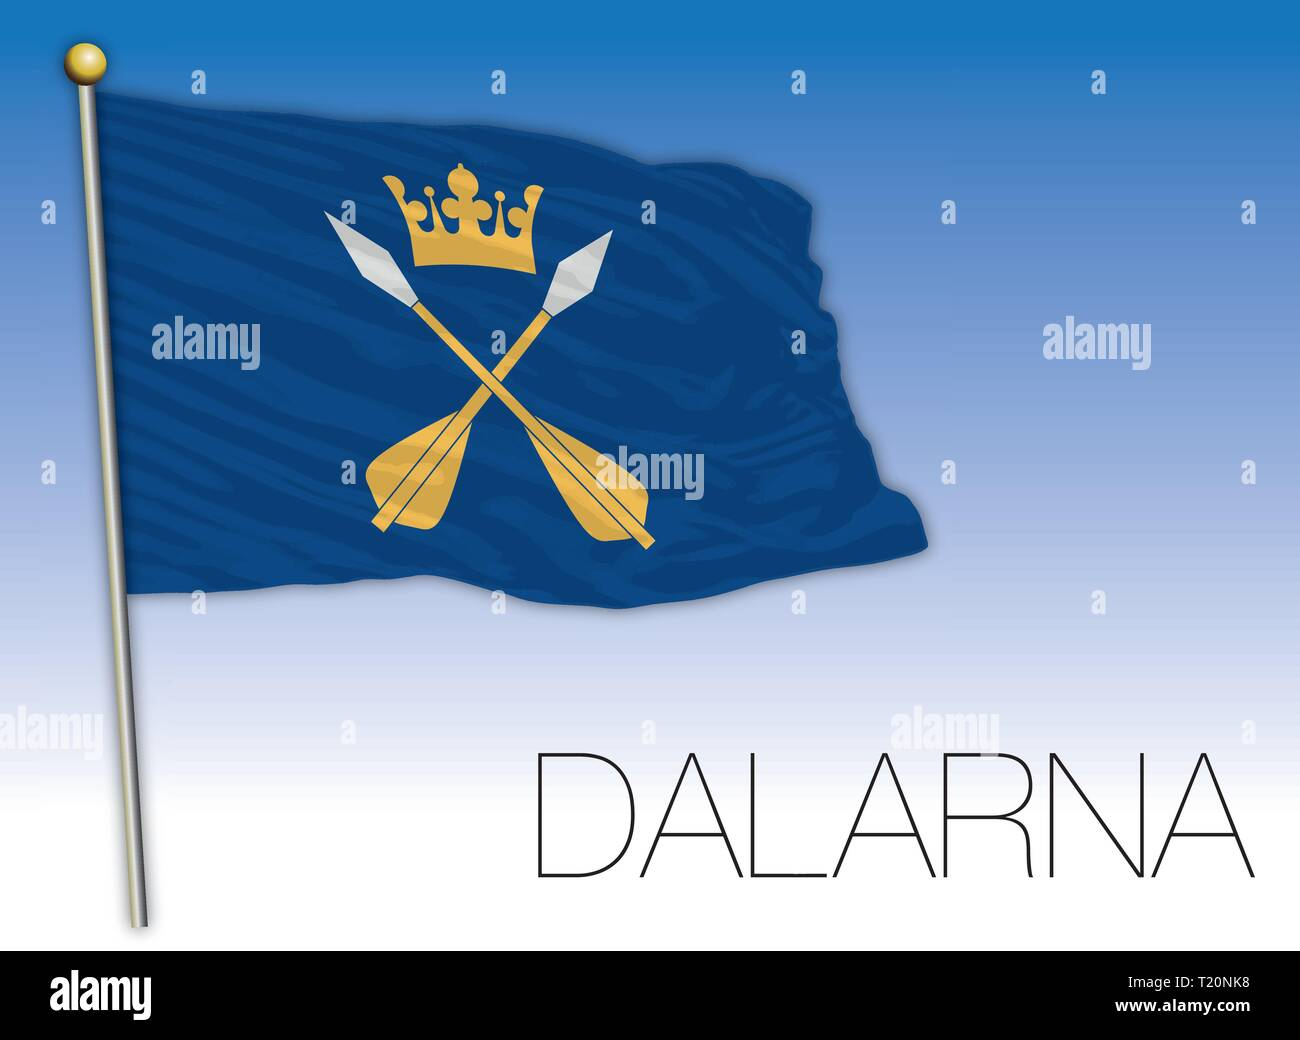 Dalarna regional flag, Sweden, vector illustration - Stock Image